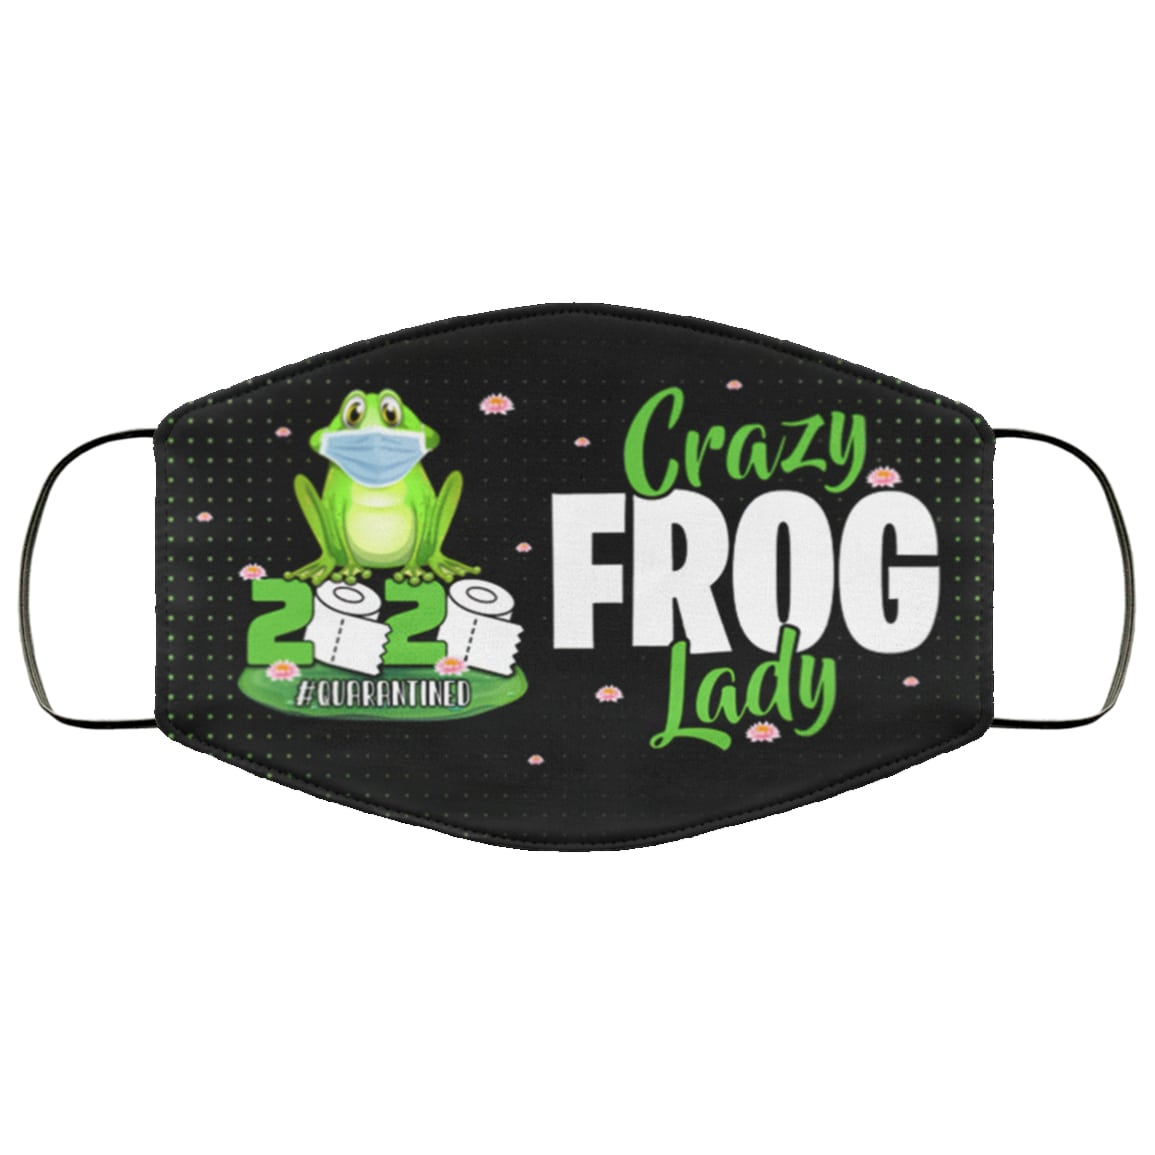 Crazy frog lady 2020 quarantined anti pollution face mask 2